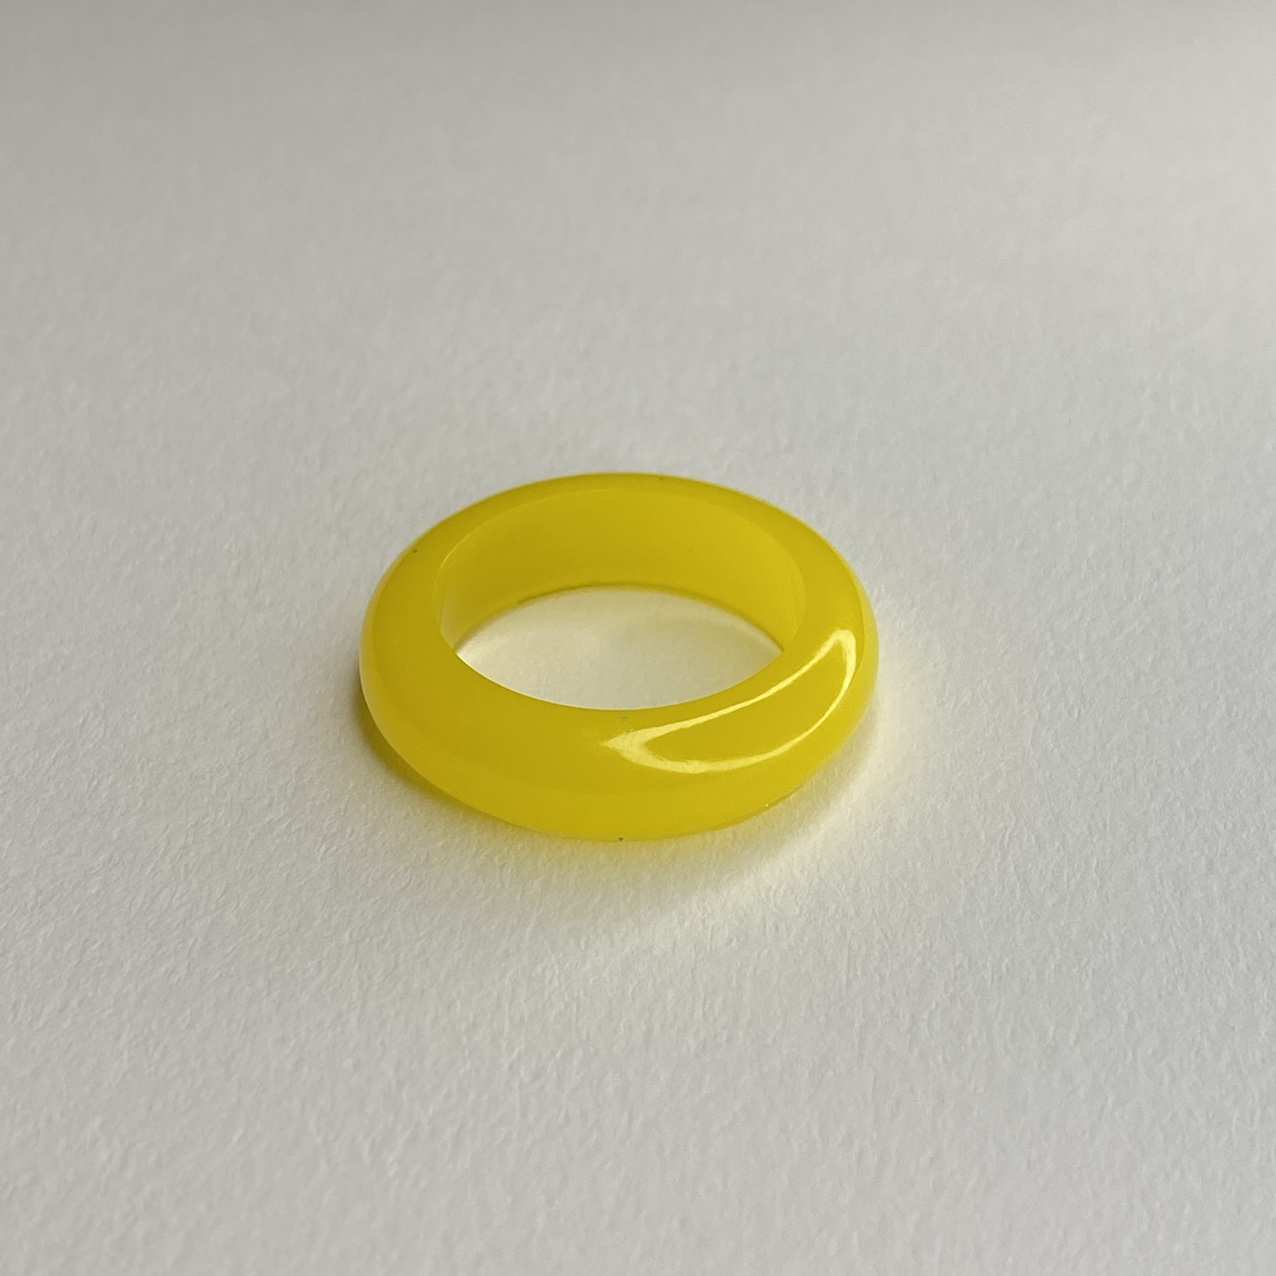 Product Image 1 - 💛 YELLOW RING WITH SOME